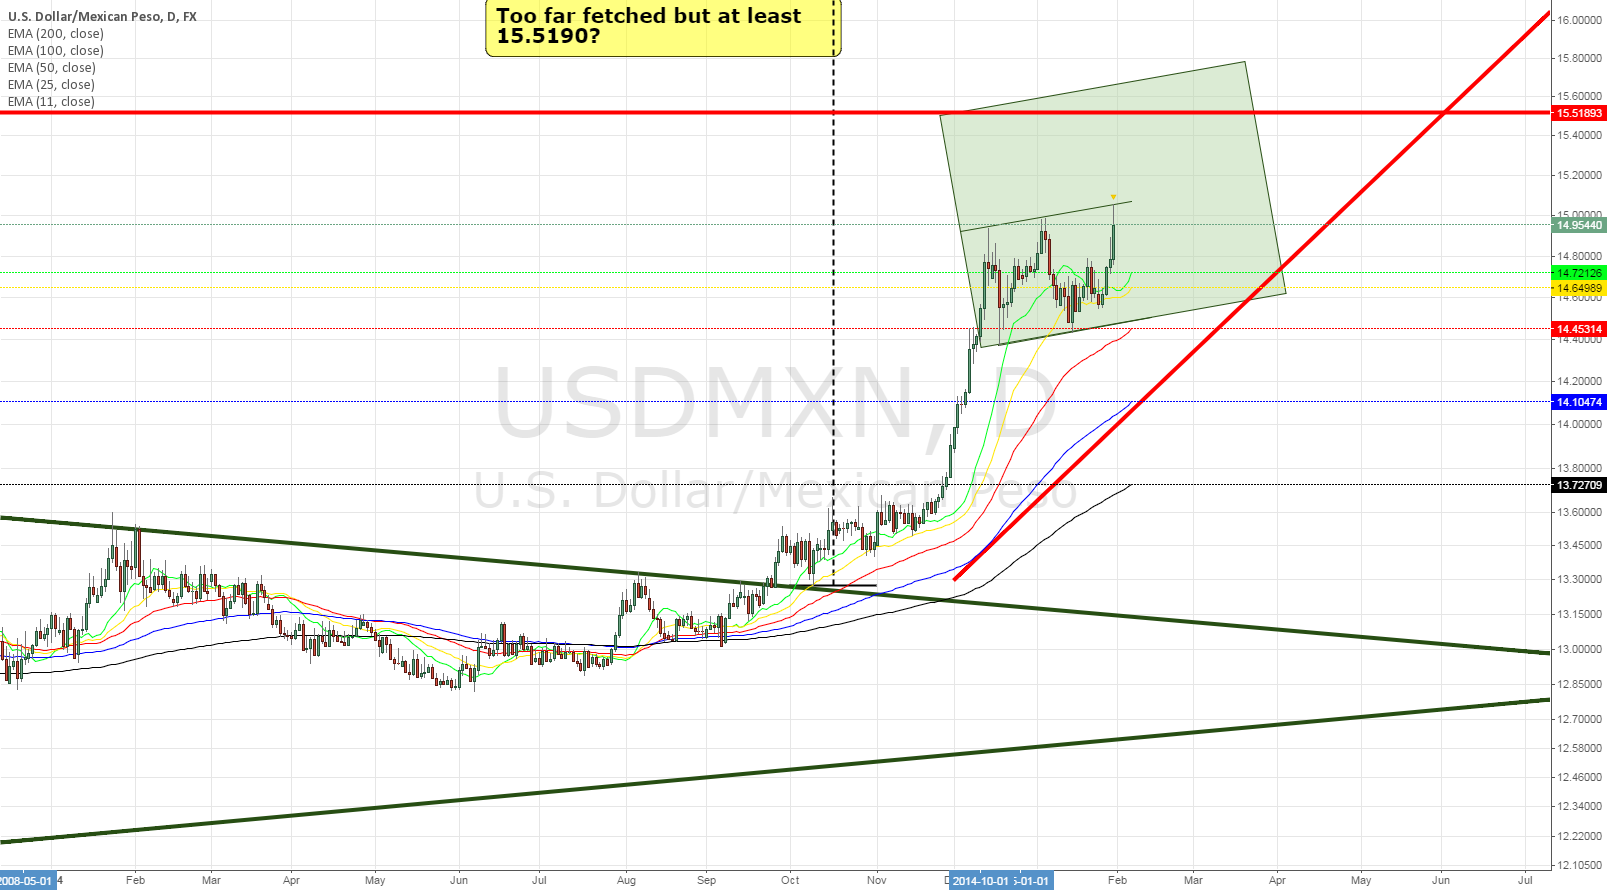 USDMXN daily at least  15.50?